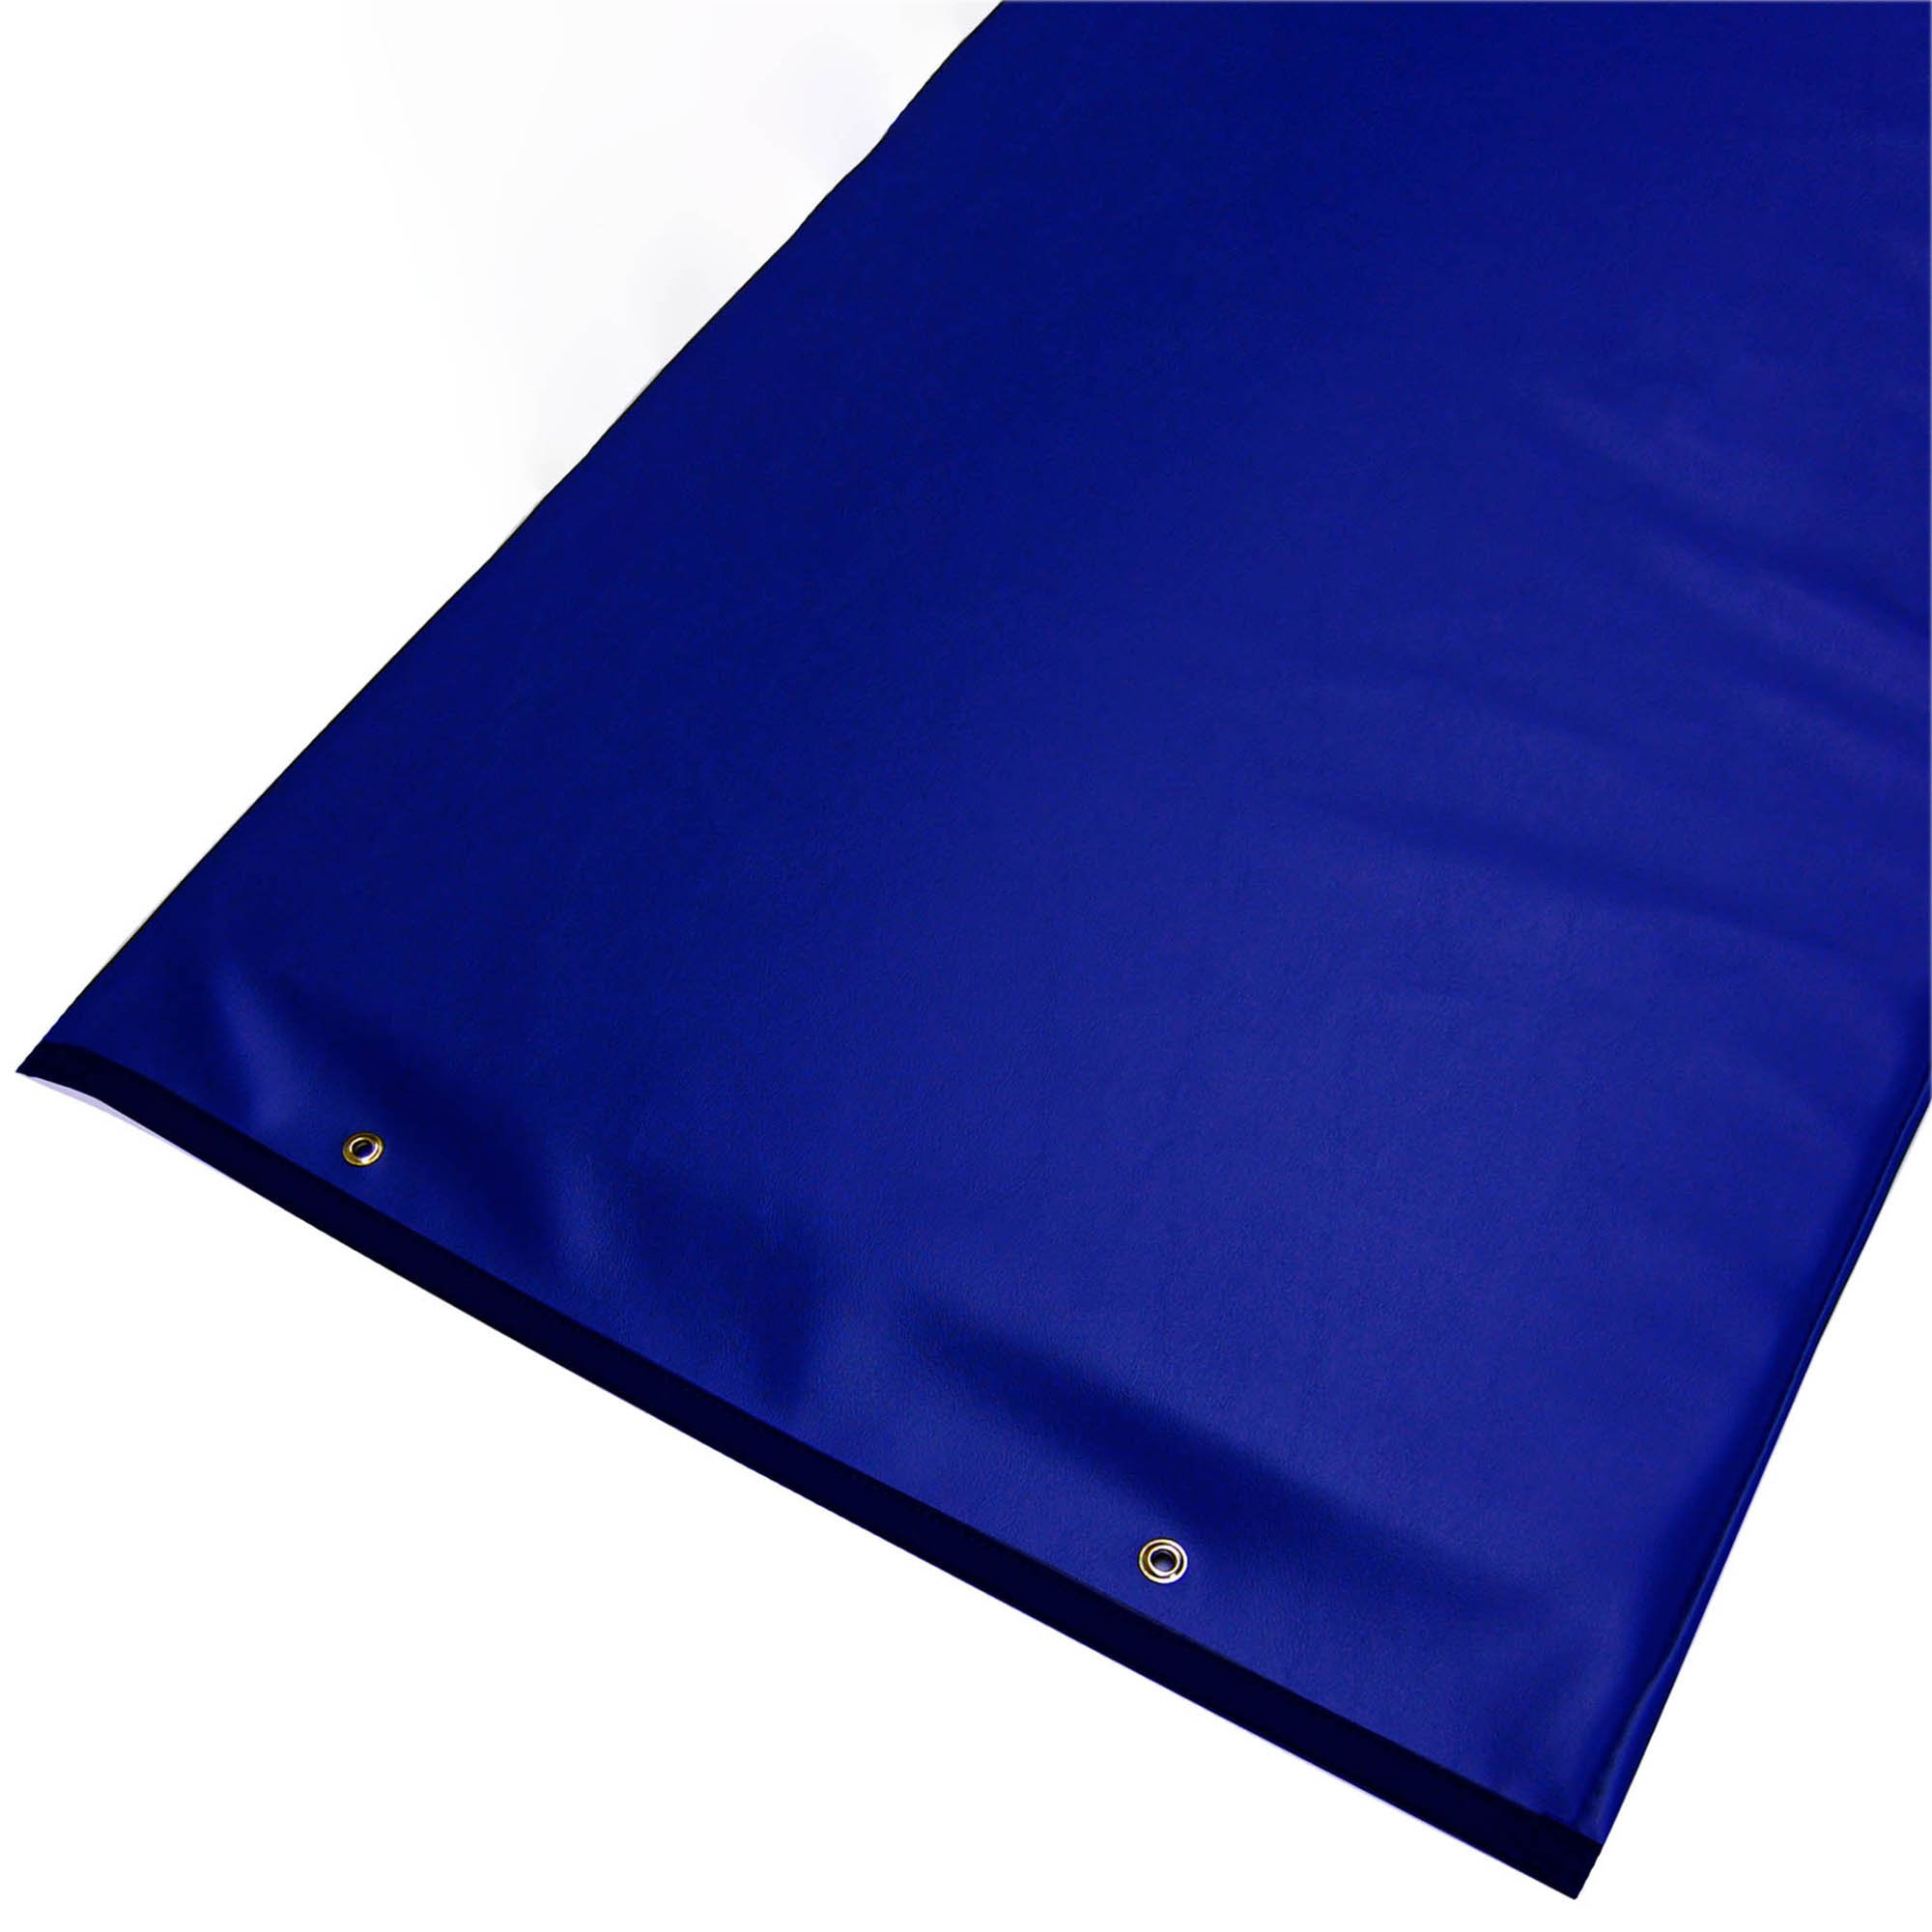 Standard Radiolucent X-Ray Comfort Foam Table Pad - Blue Vinyl, With Grommets 72